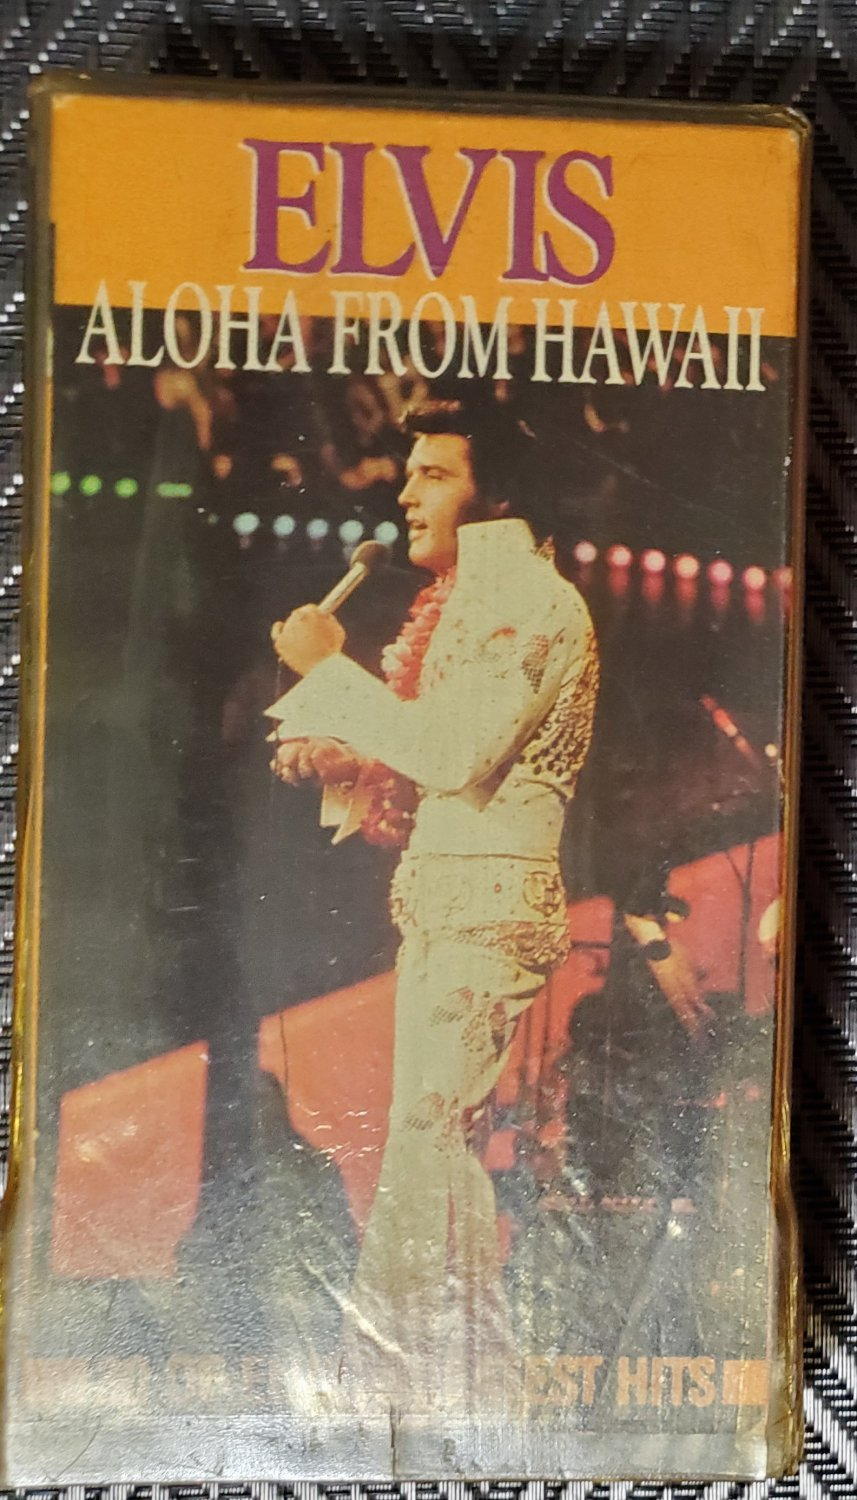 Video Tape VHS Elvis Presley Aloha From Hawaii Live In Concert 30 Hits